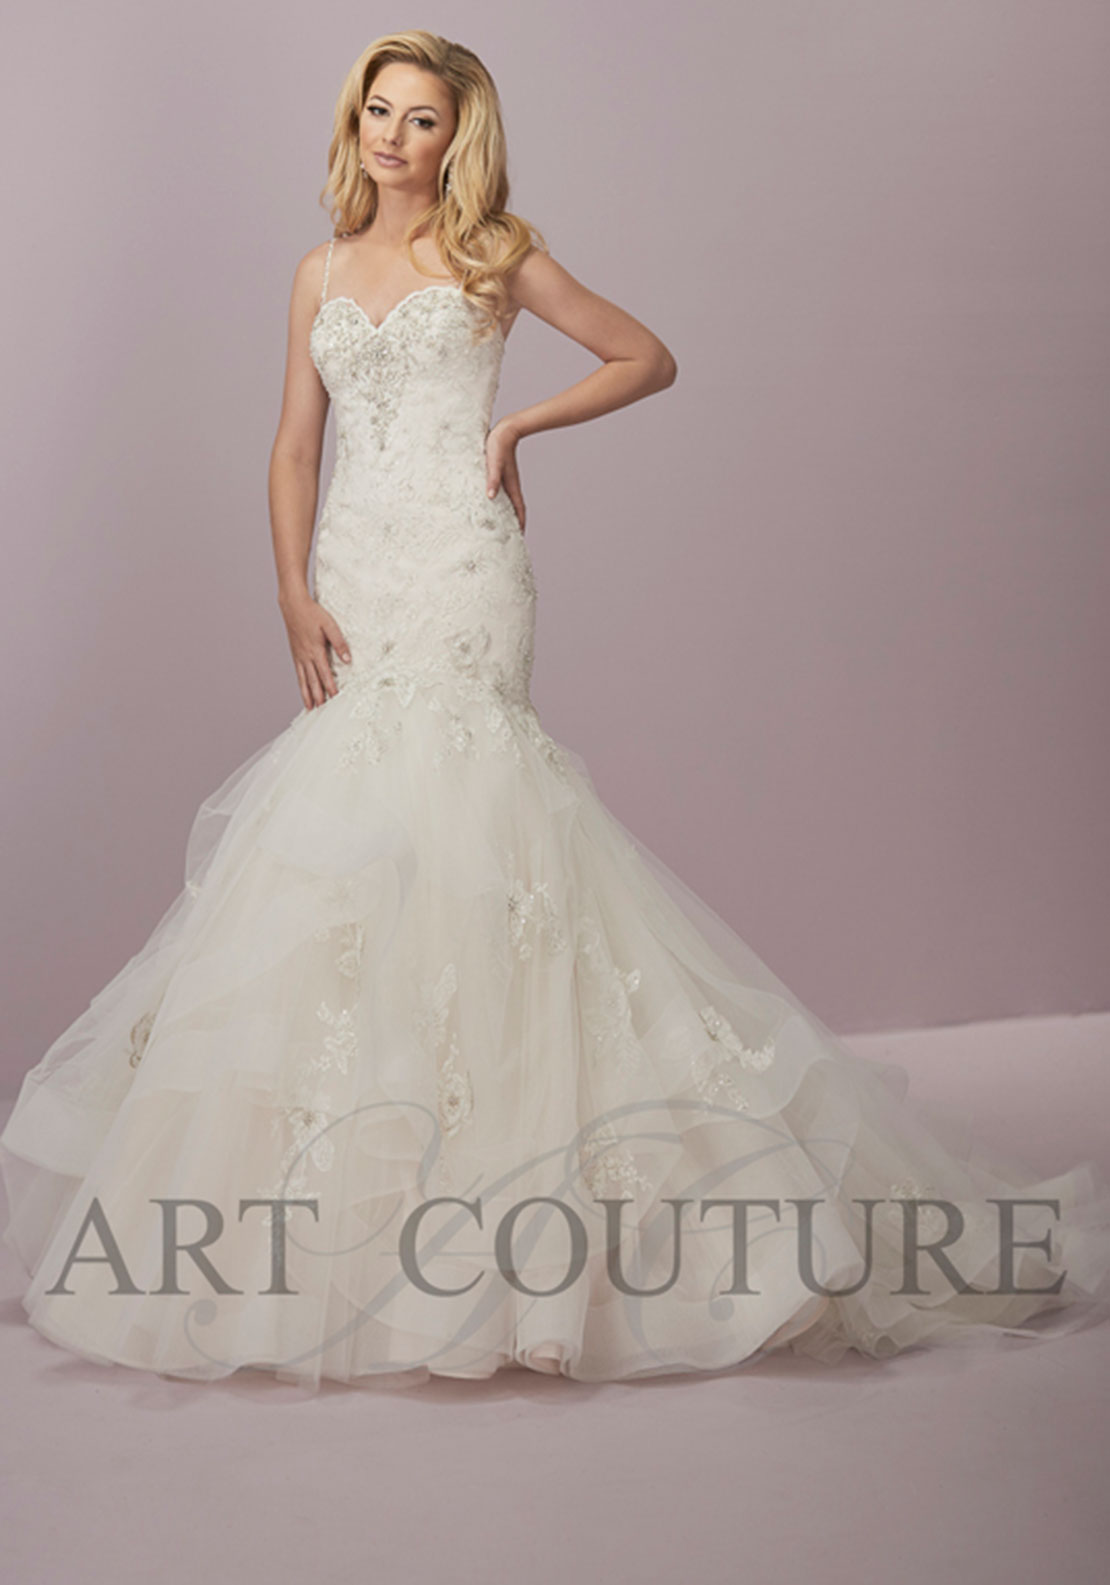 Art Couture AC516 Wedding Dress UK Size 12